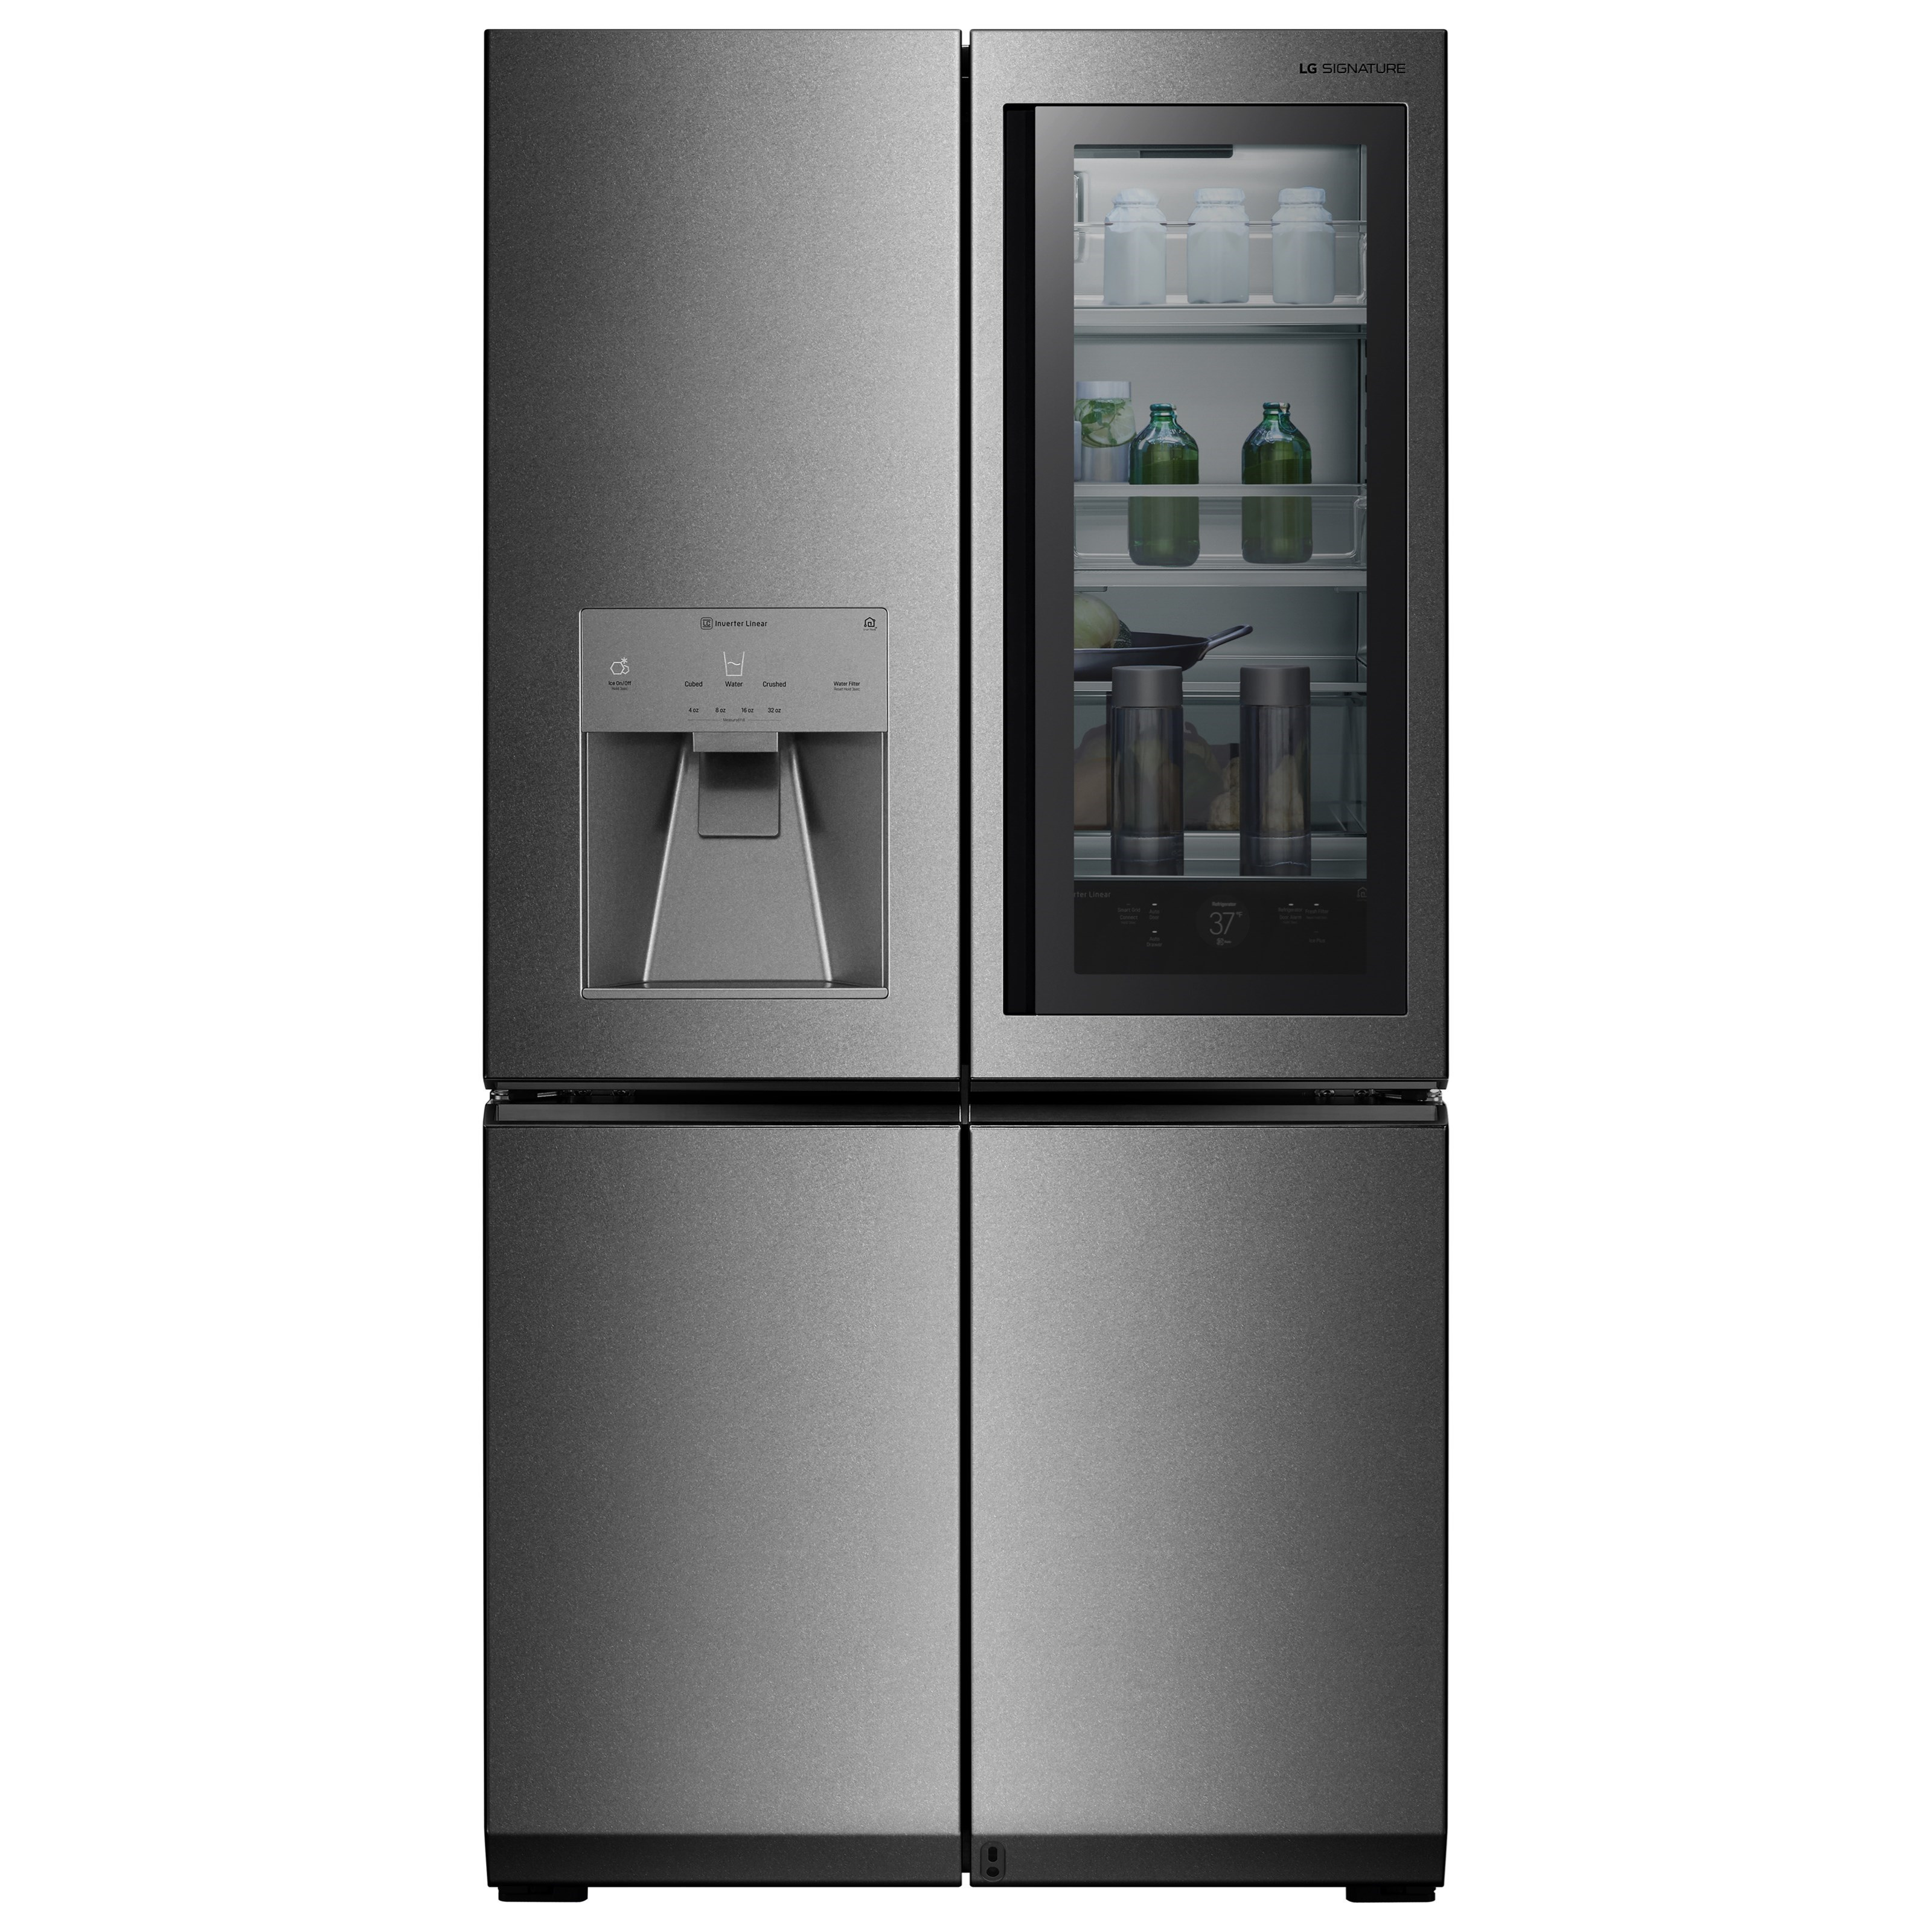 bgd refrigerator retailer door series of sliding elite coldco refrigeration freezers model coolers freezer true toronto hussmann and new glass product products category countertop display refrigerators